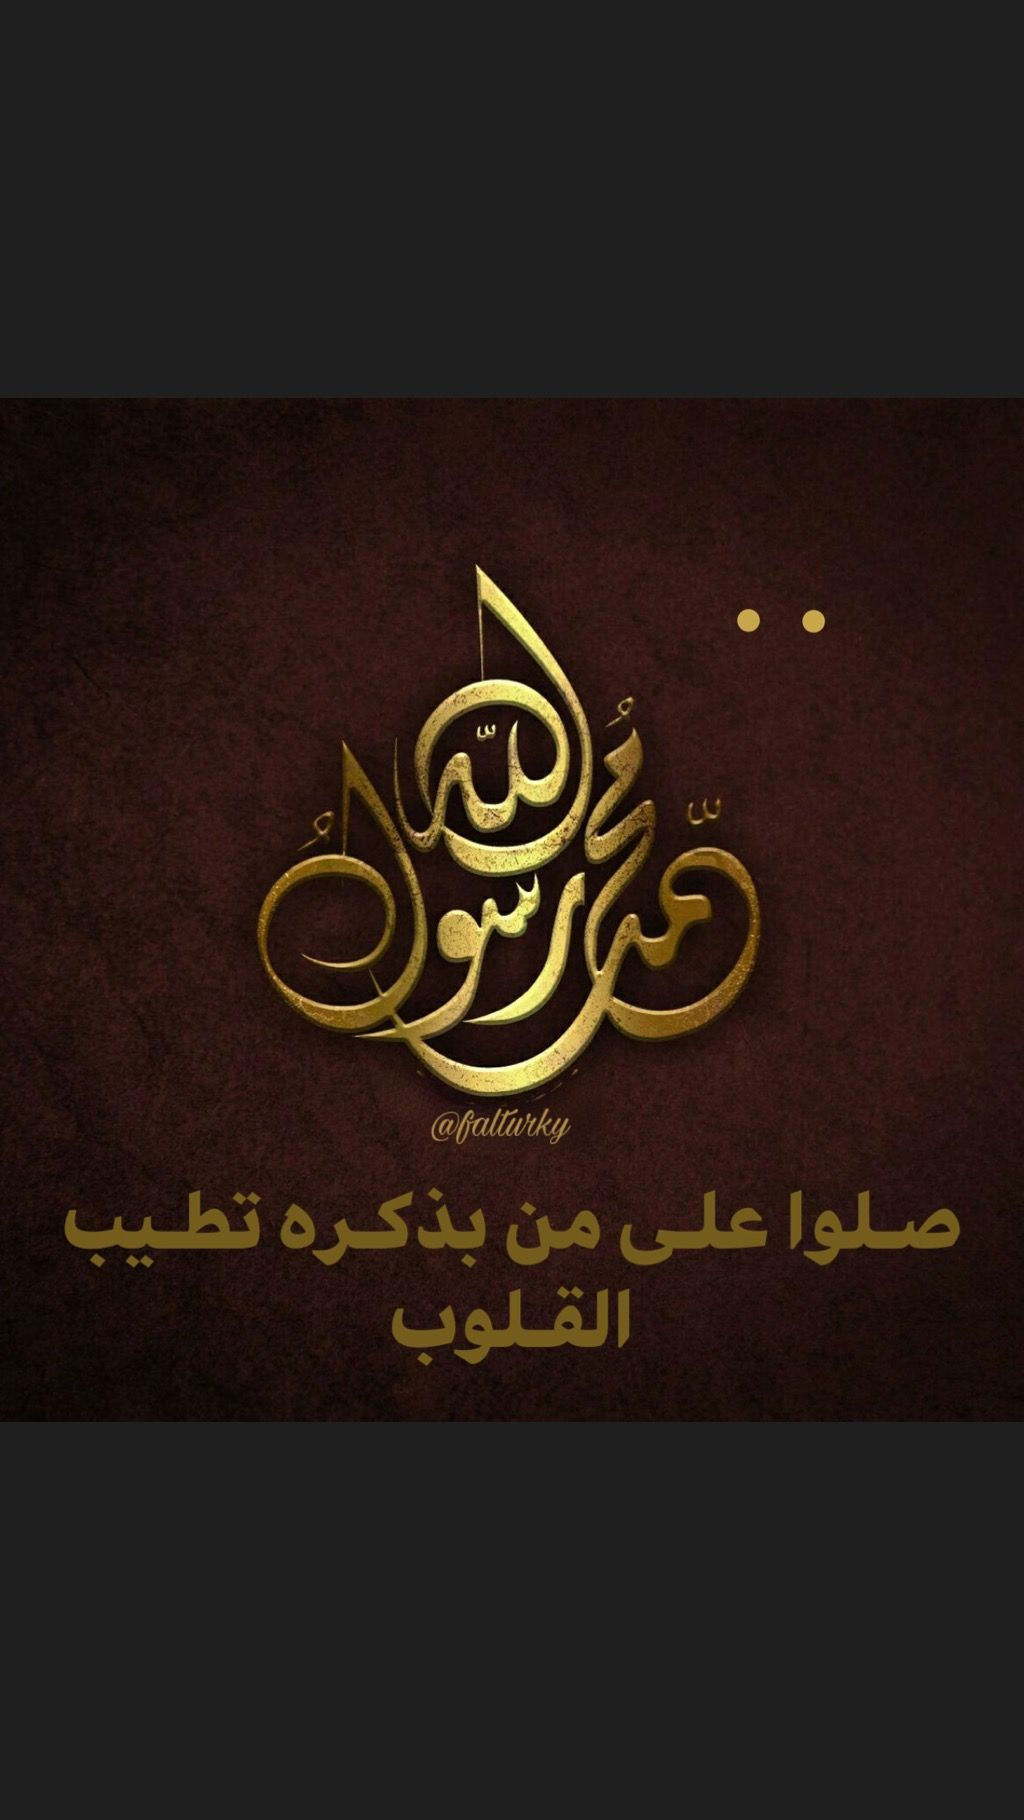 Pin By نوف جراح On جمعه Arabic Calligraphy Calligraphy